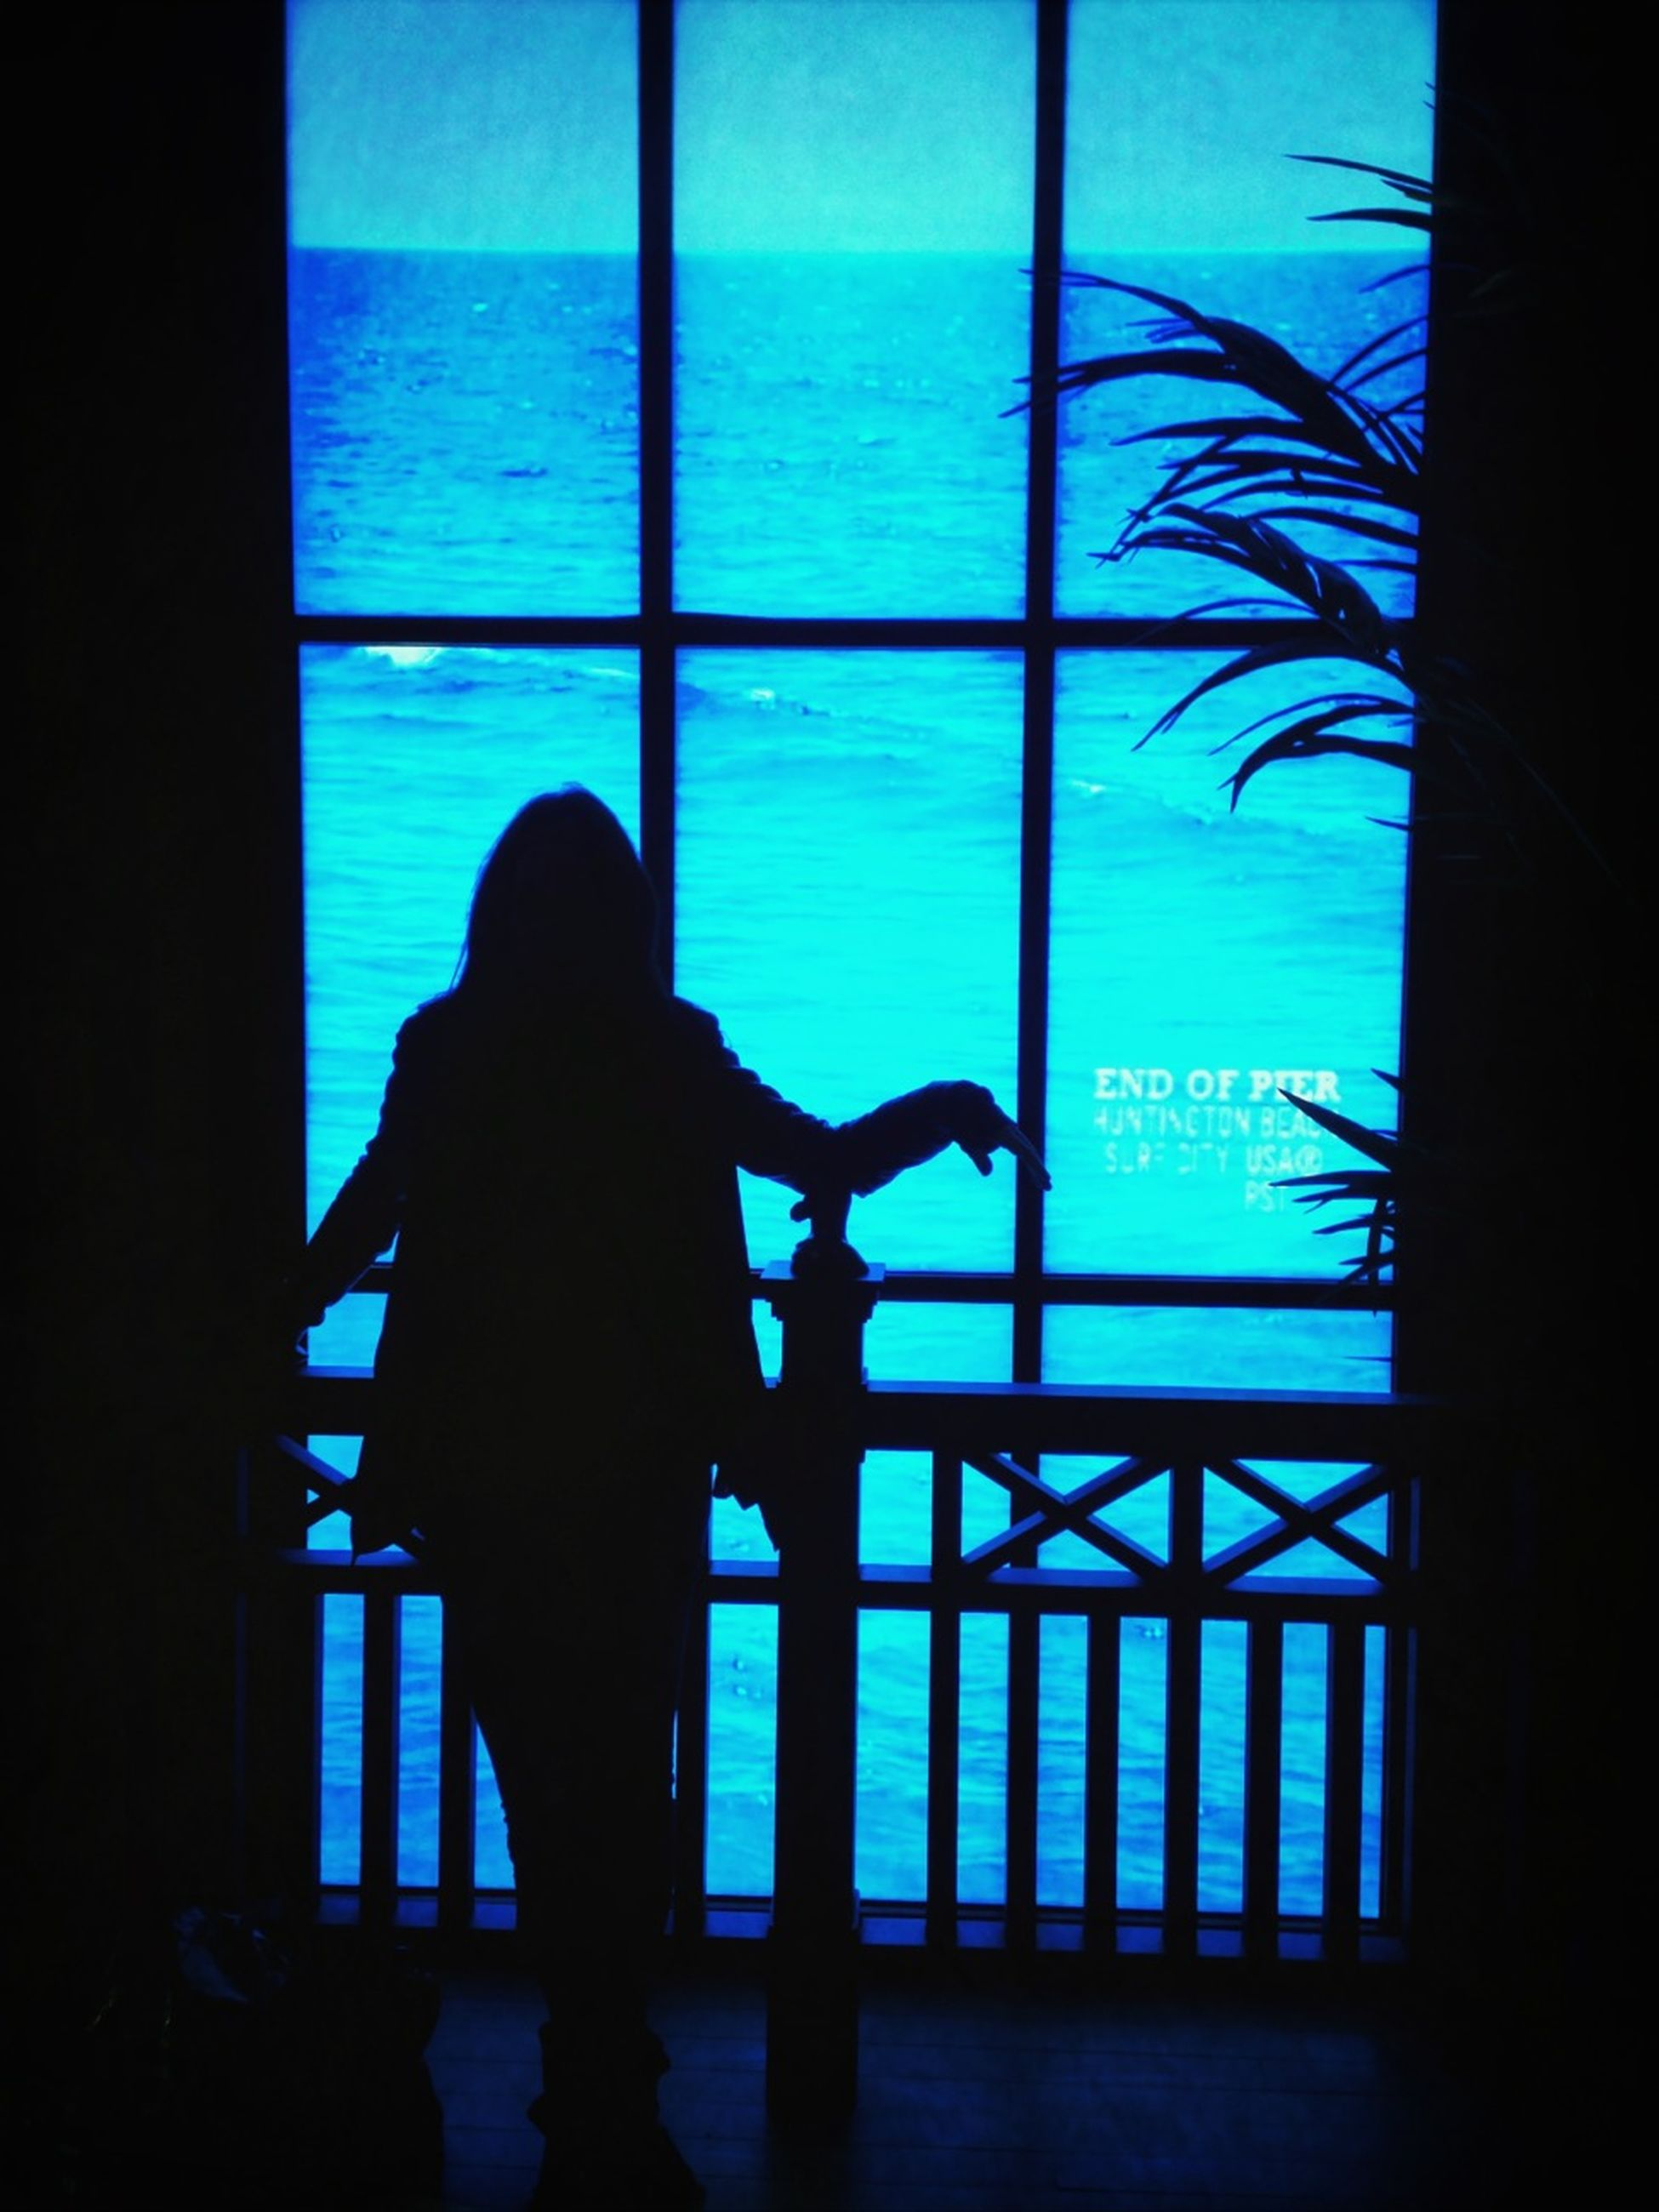 indoors, silhouette, window, lifestyles, leisure activity, men, standing, glass - material, rear view, sea, person, transparent, horizon over water, sitting, full length, shadow, sunlight